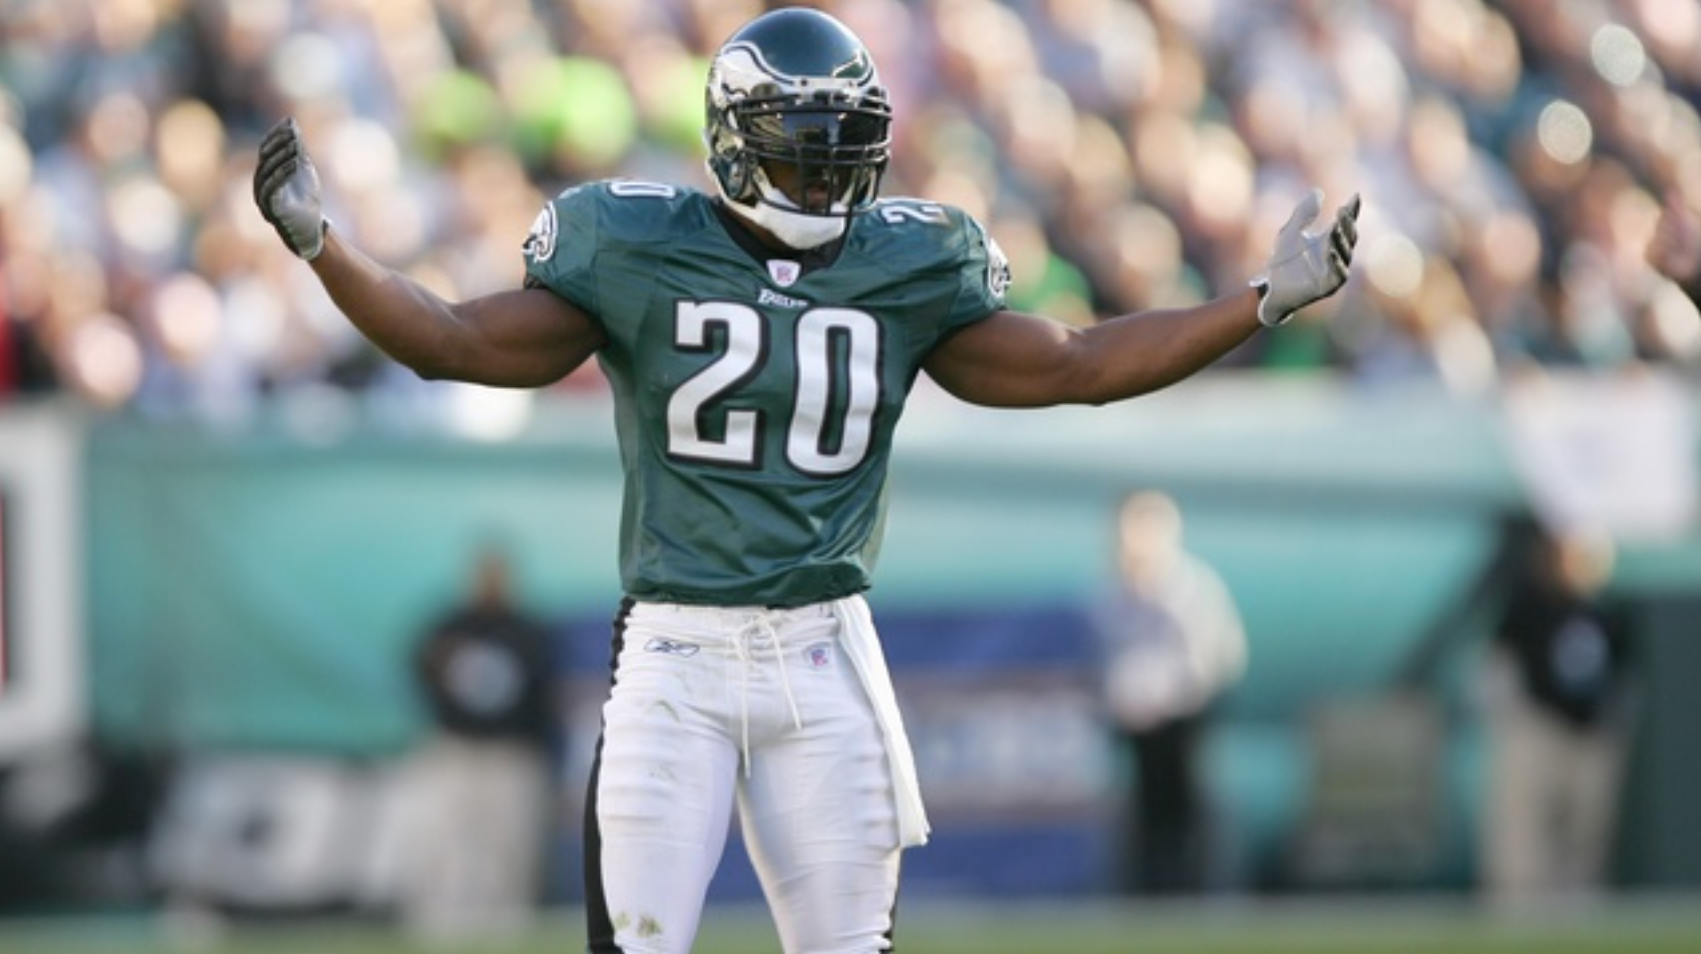 ddbad4a876b Former Raines standout Brian Dawkins has been voted into the NFL Pro  Football Hall of Fame.